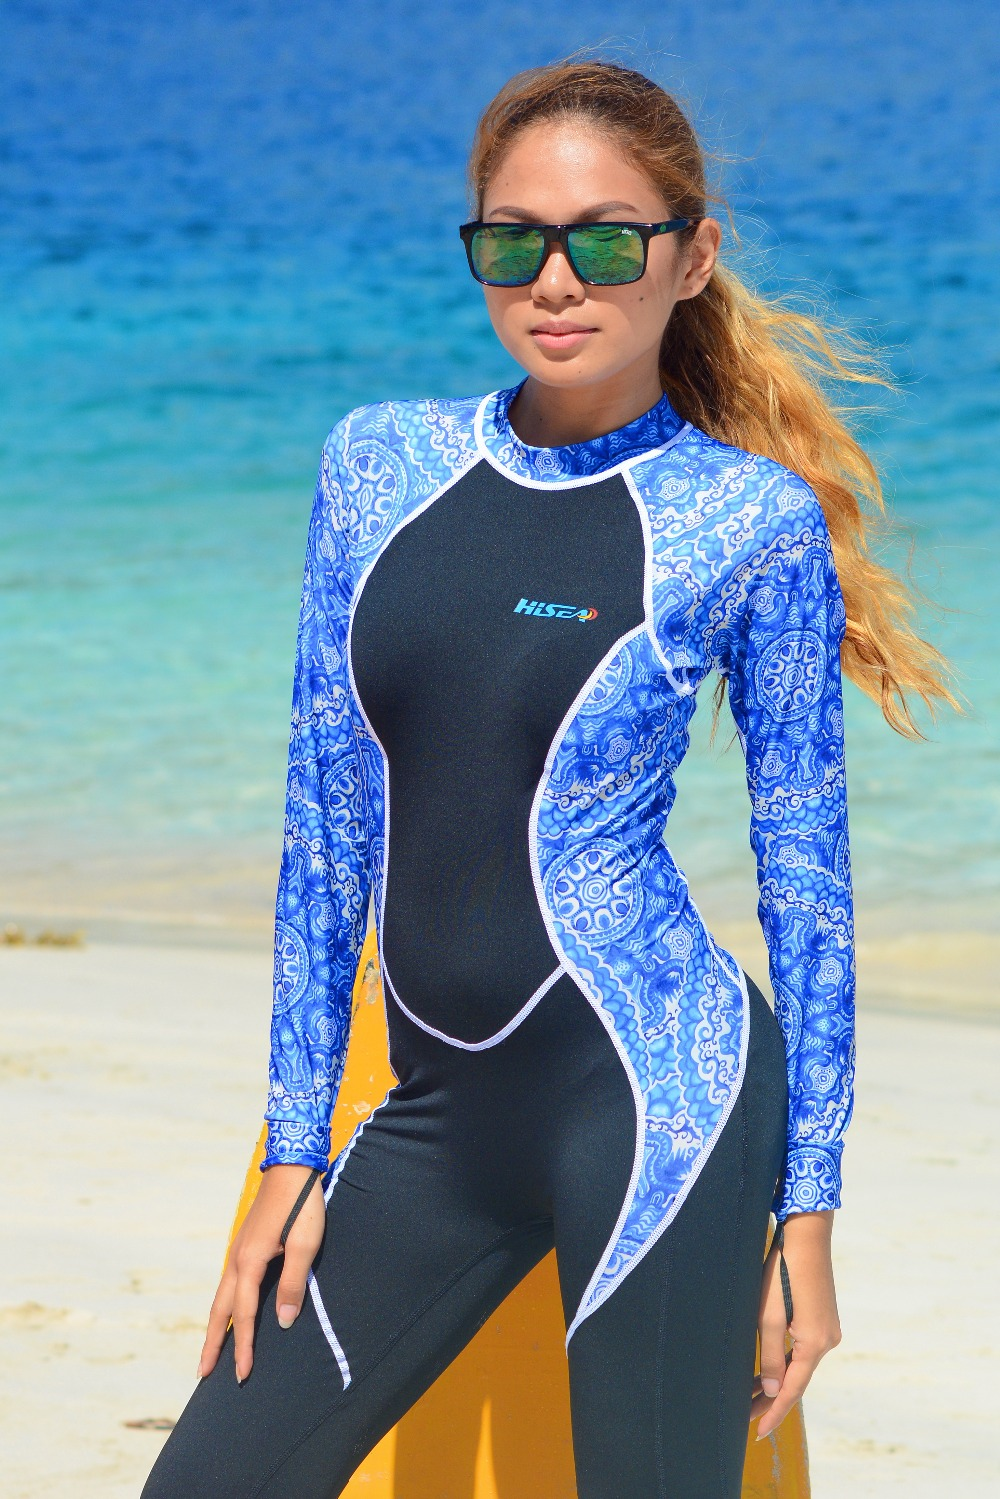 diving suit long sleeved  wetsuit sunscreen swimsuit shorts body surfing snorkeling j driving pants cloth